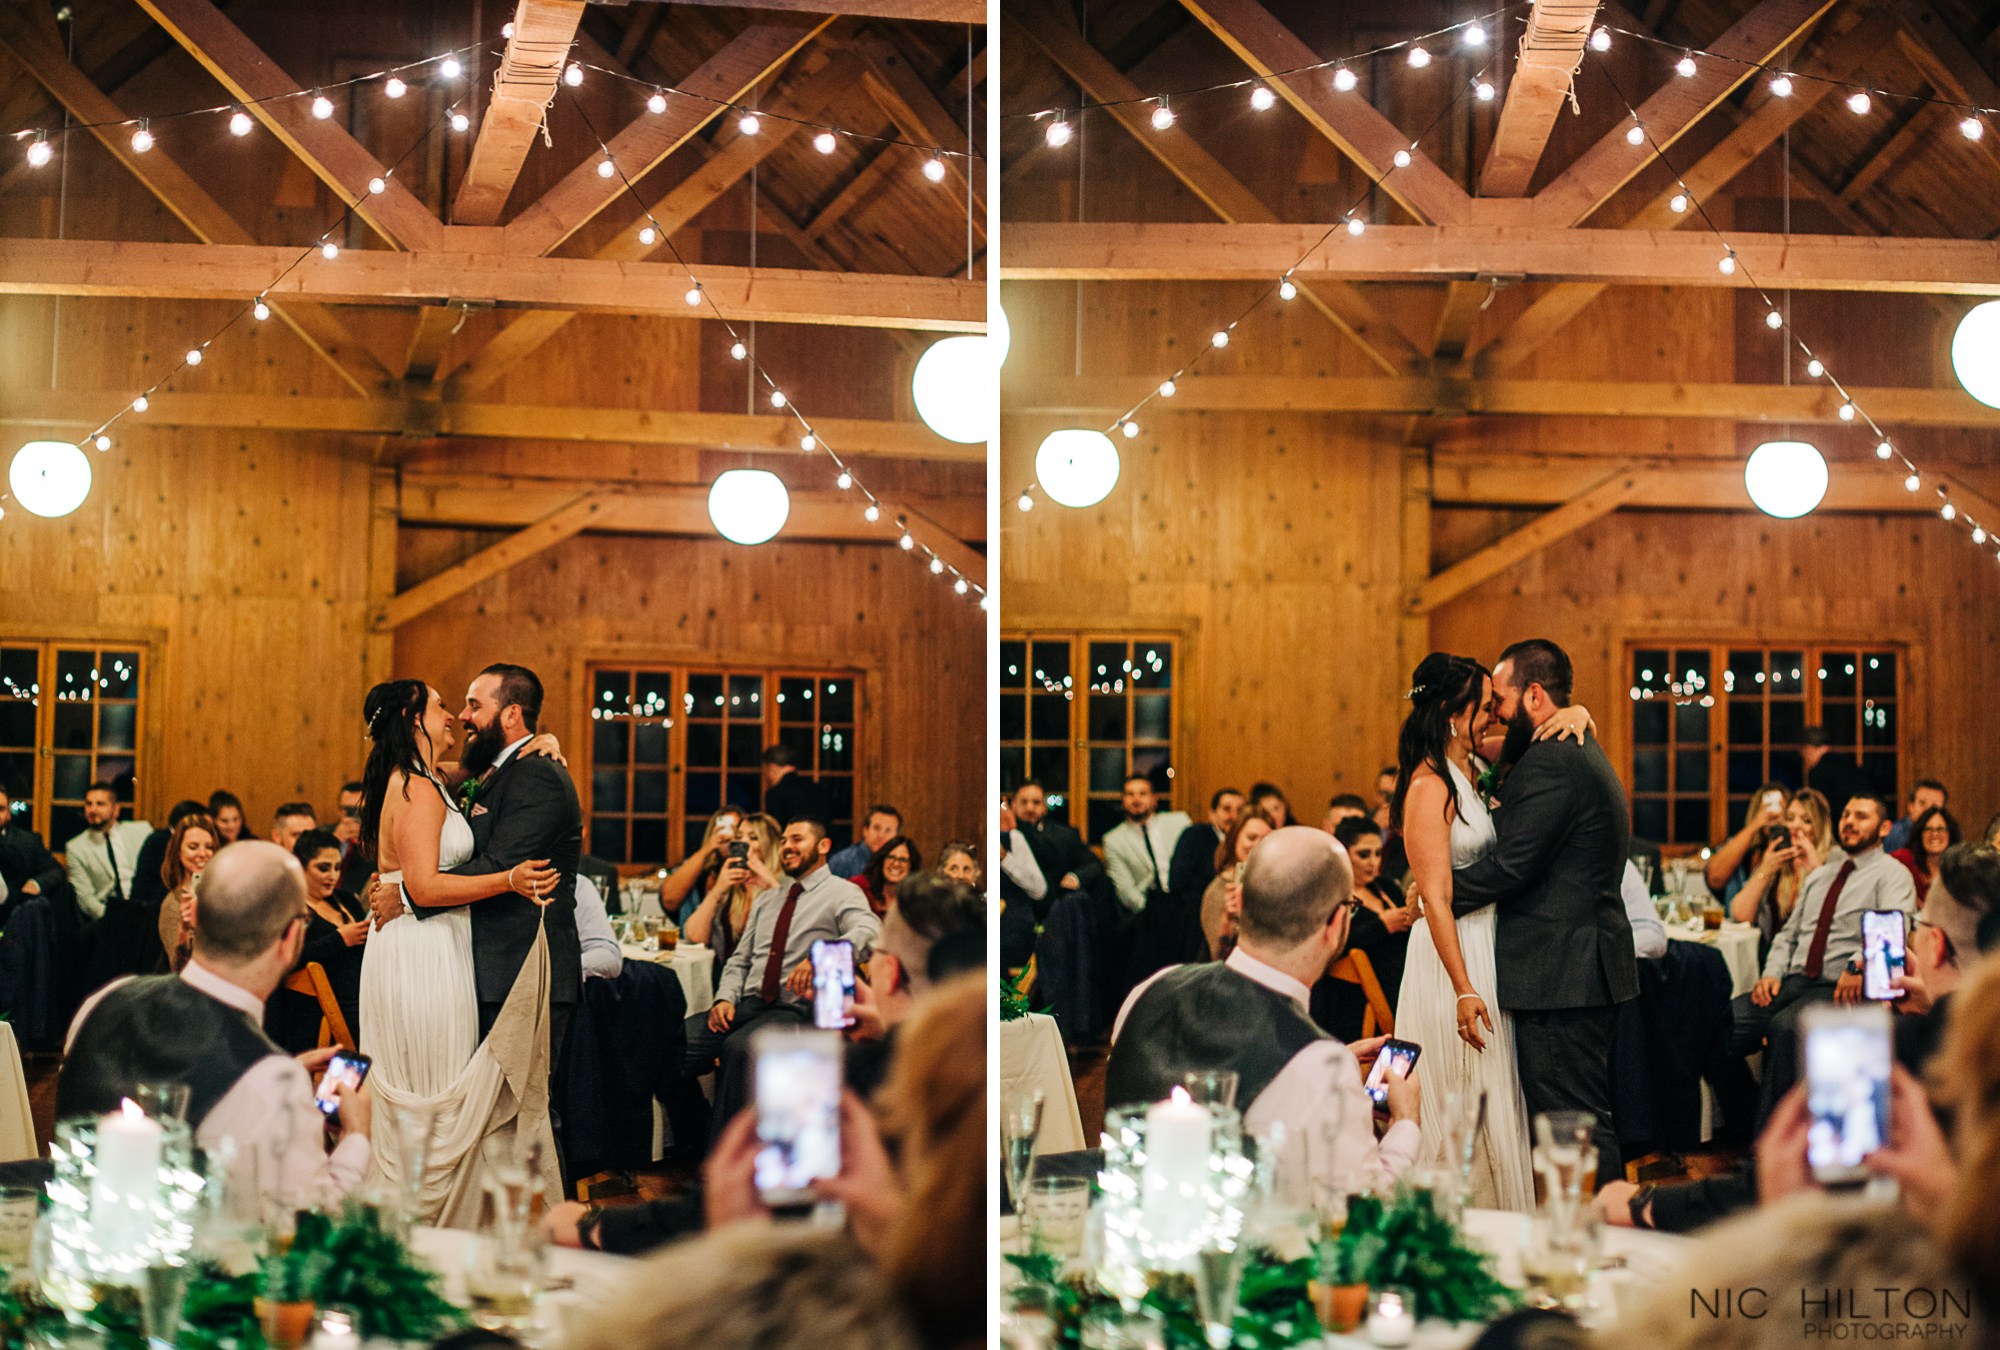 Camp-High-Sierra-First-Dance-Wedding.jpg